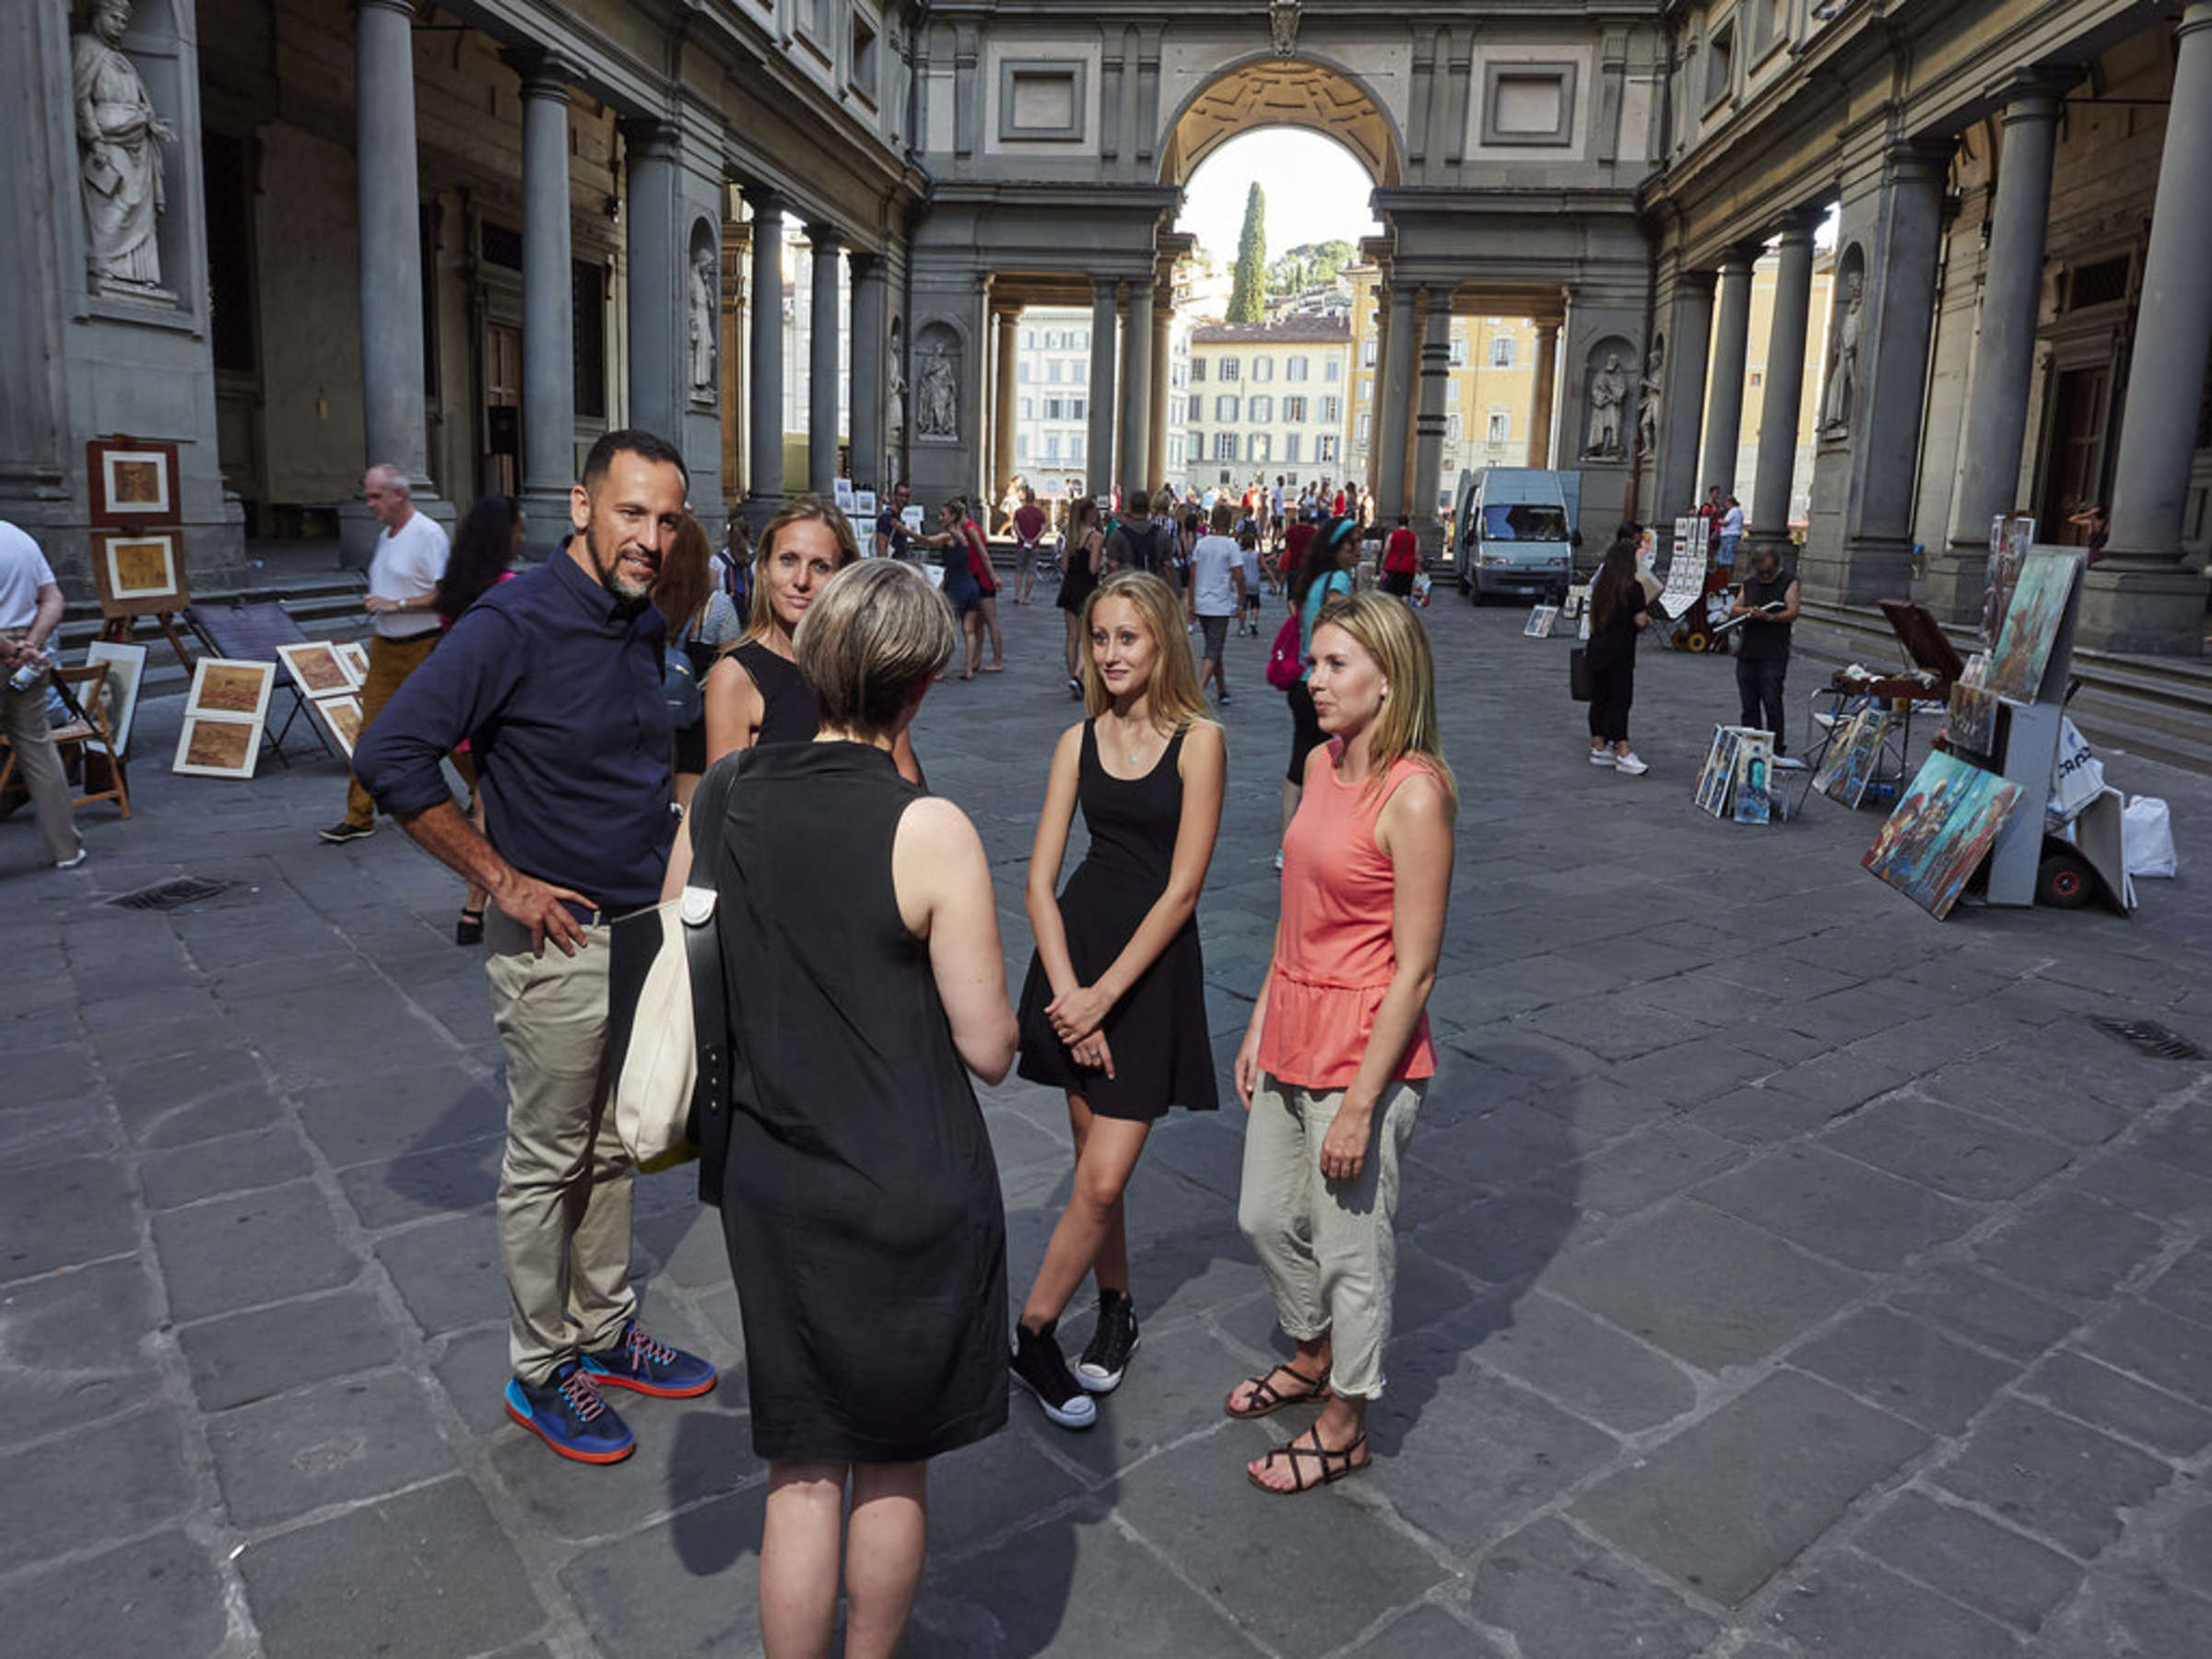 Uffizi Gallery Tour: Crash Course